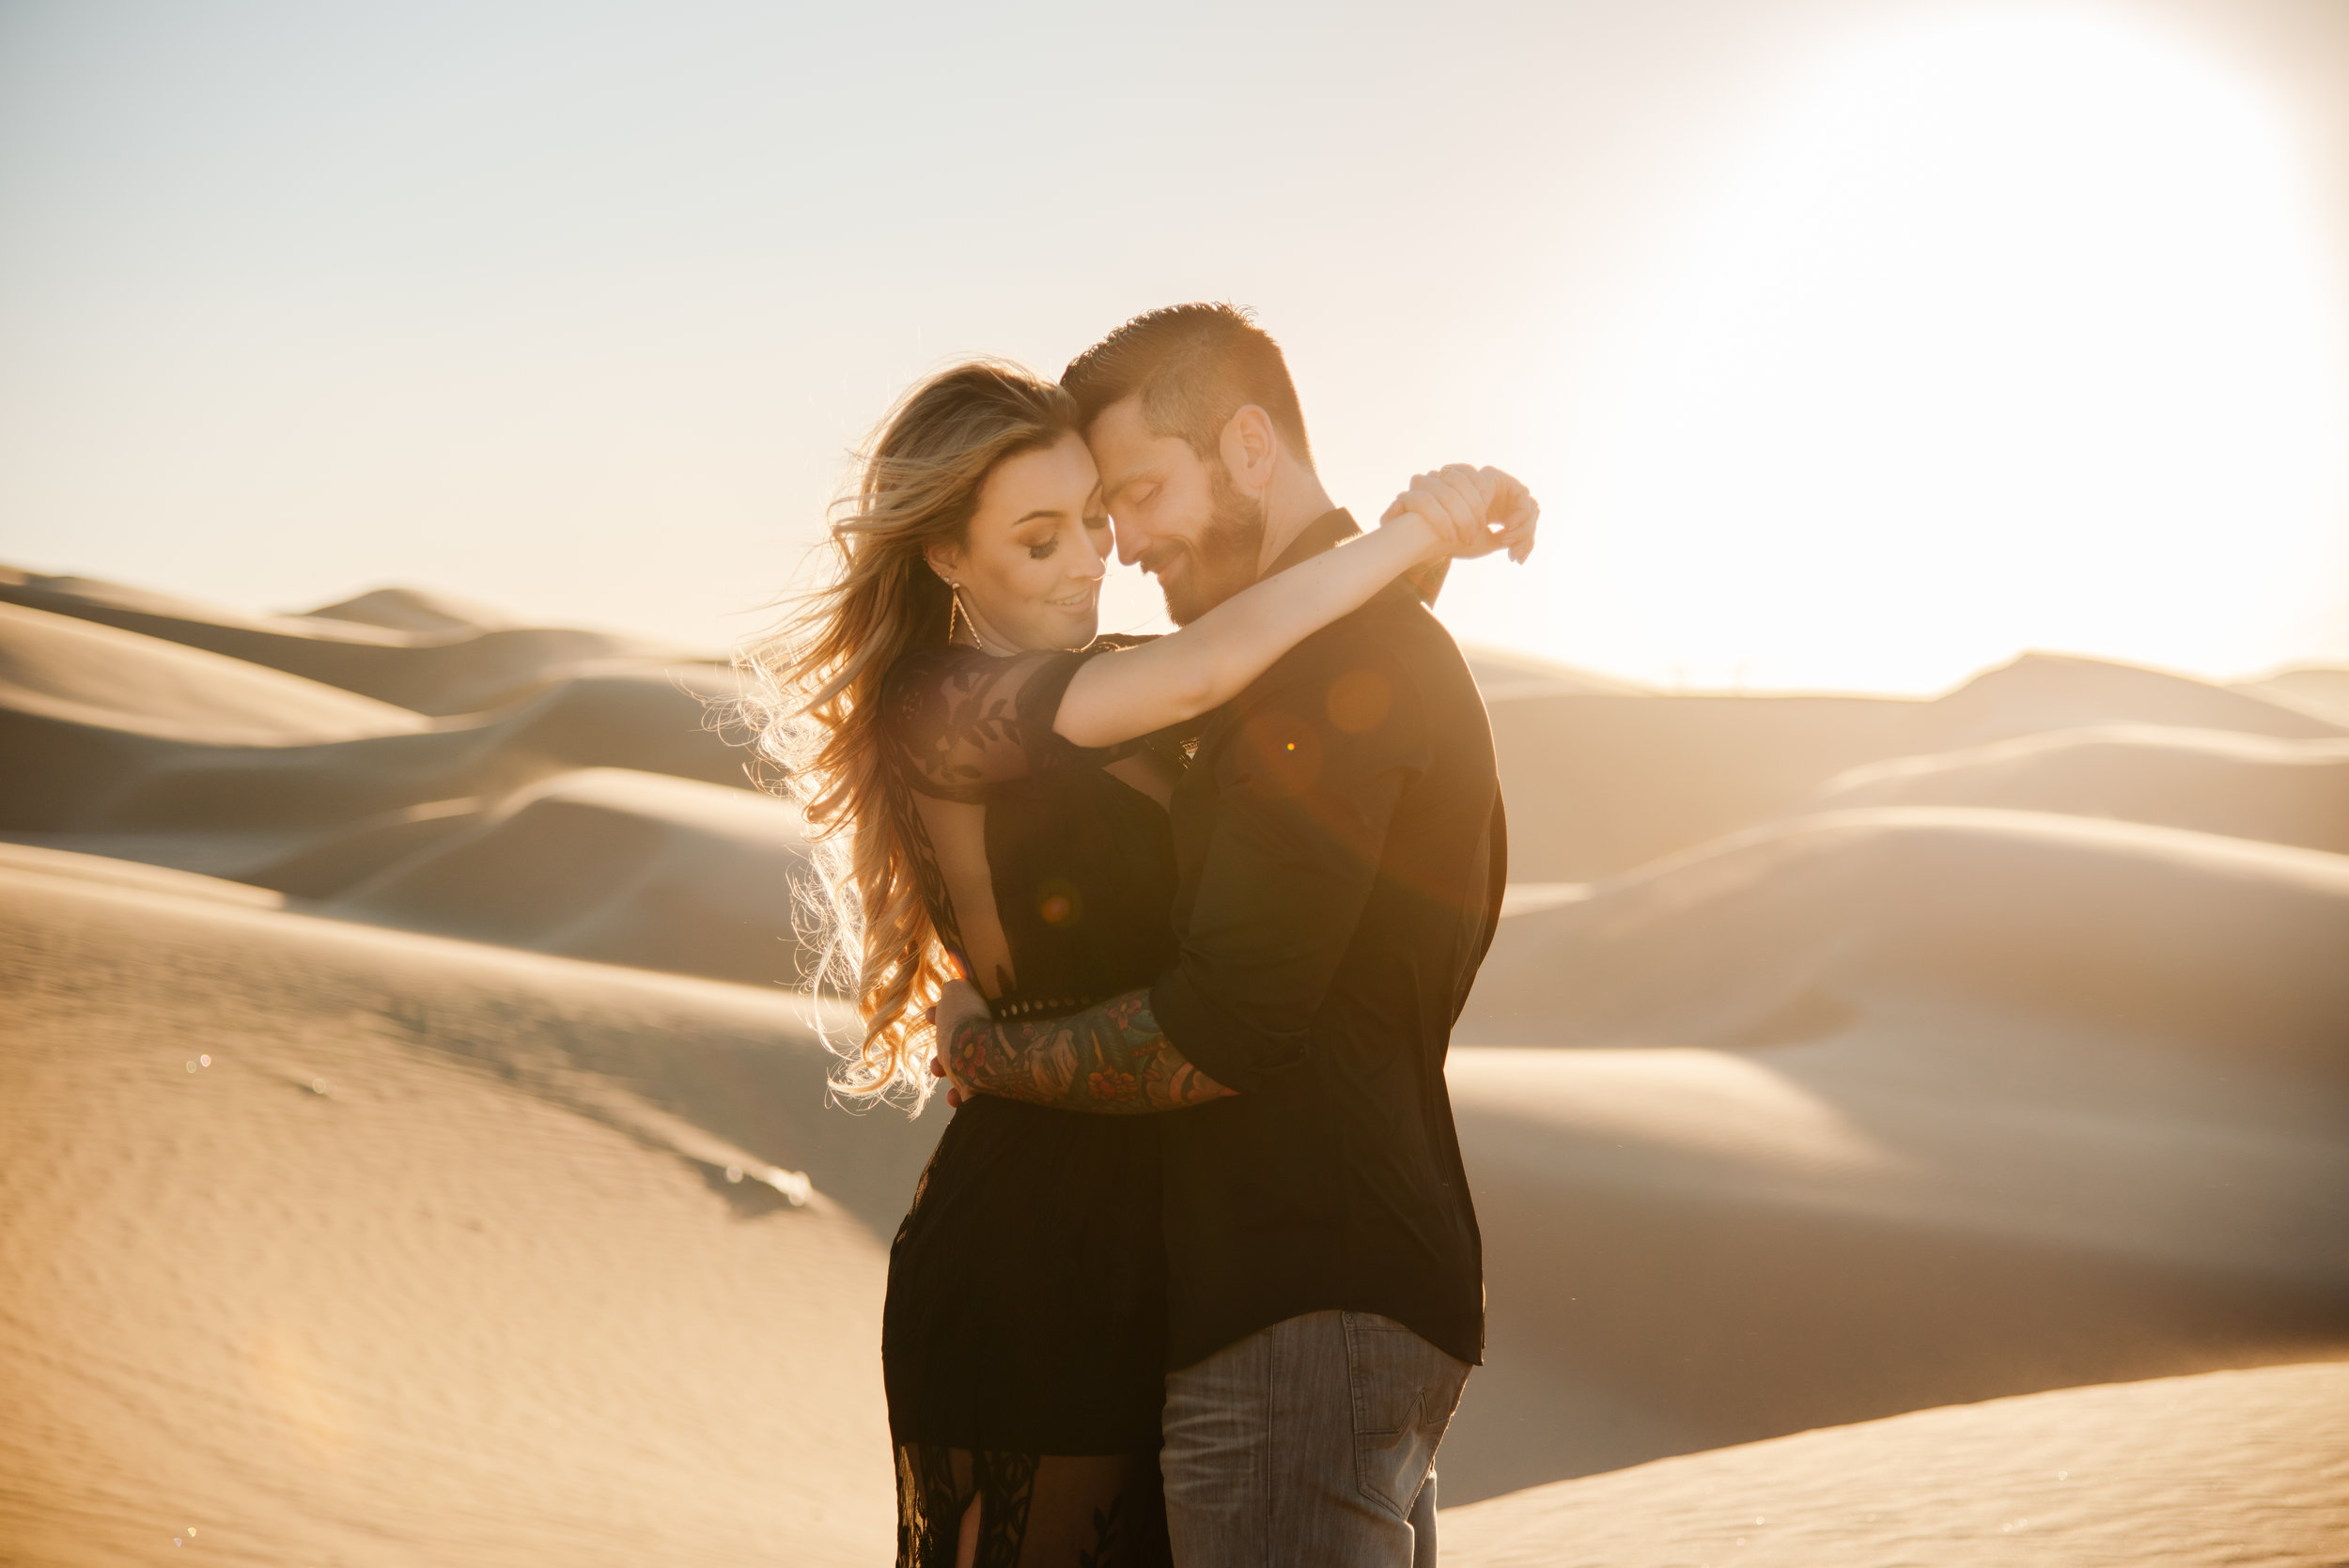 SamErica Studios - Modern San Diego Engagement Photographer - Adventure Engagement Session in Glamis Sand Dunes California-38.jpg